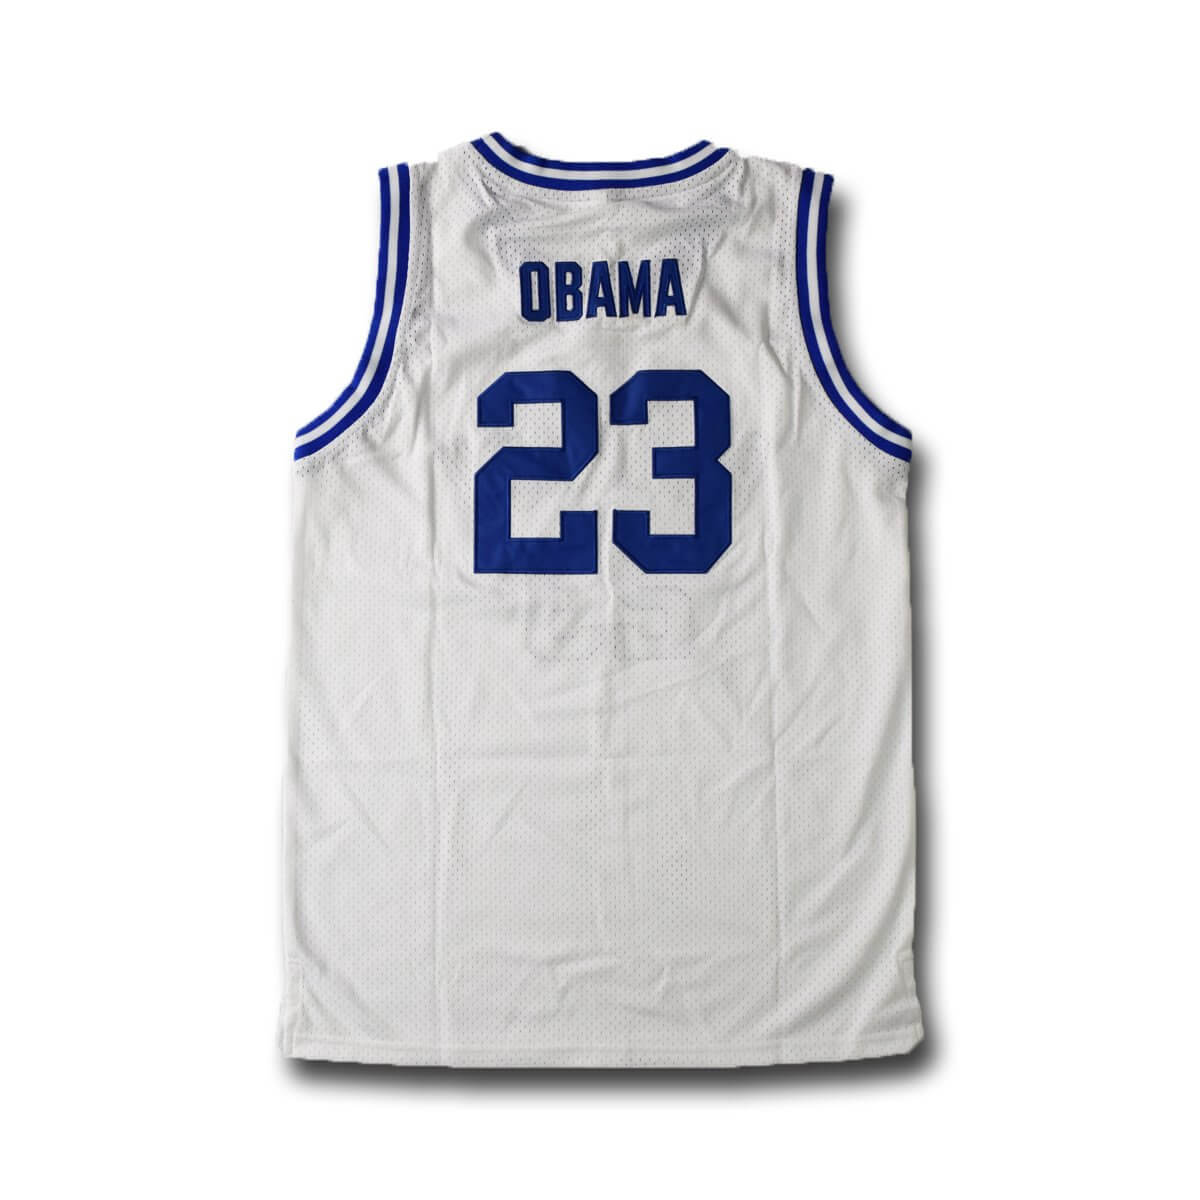 Barack Obama Punahou High School Basketball Jersey Blue Stitched